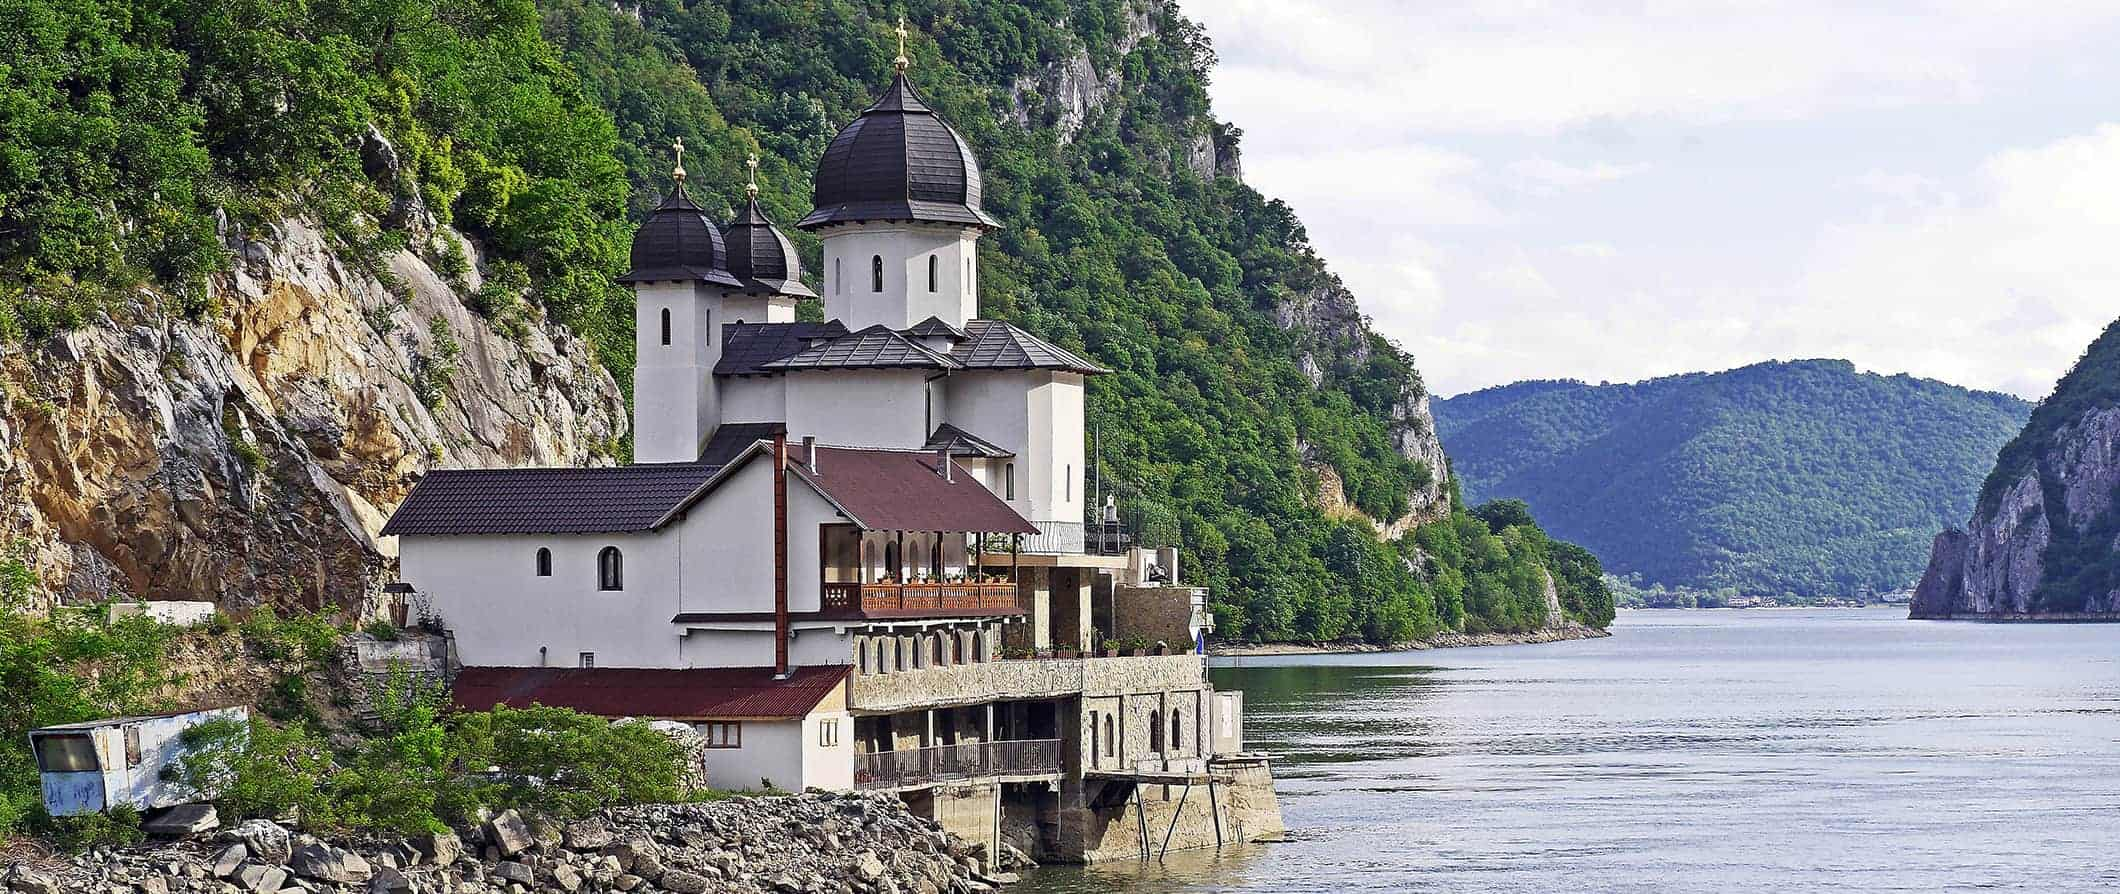 a monastery on a lake in Romania